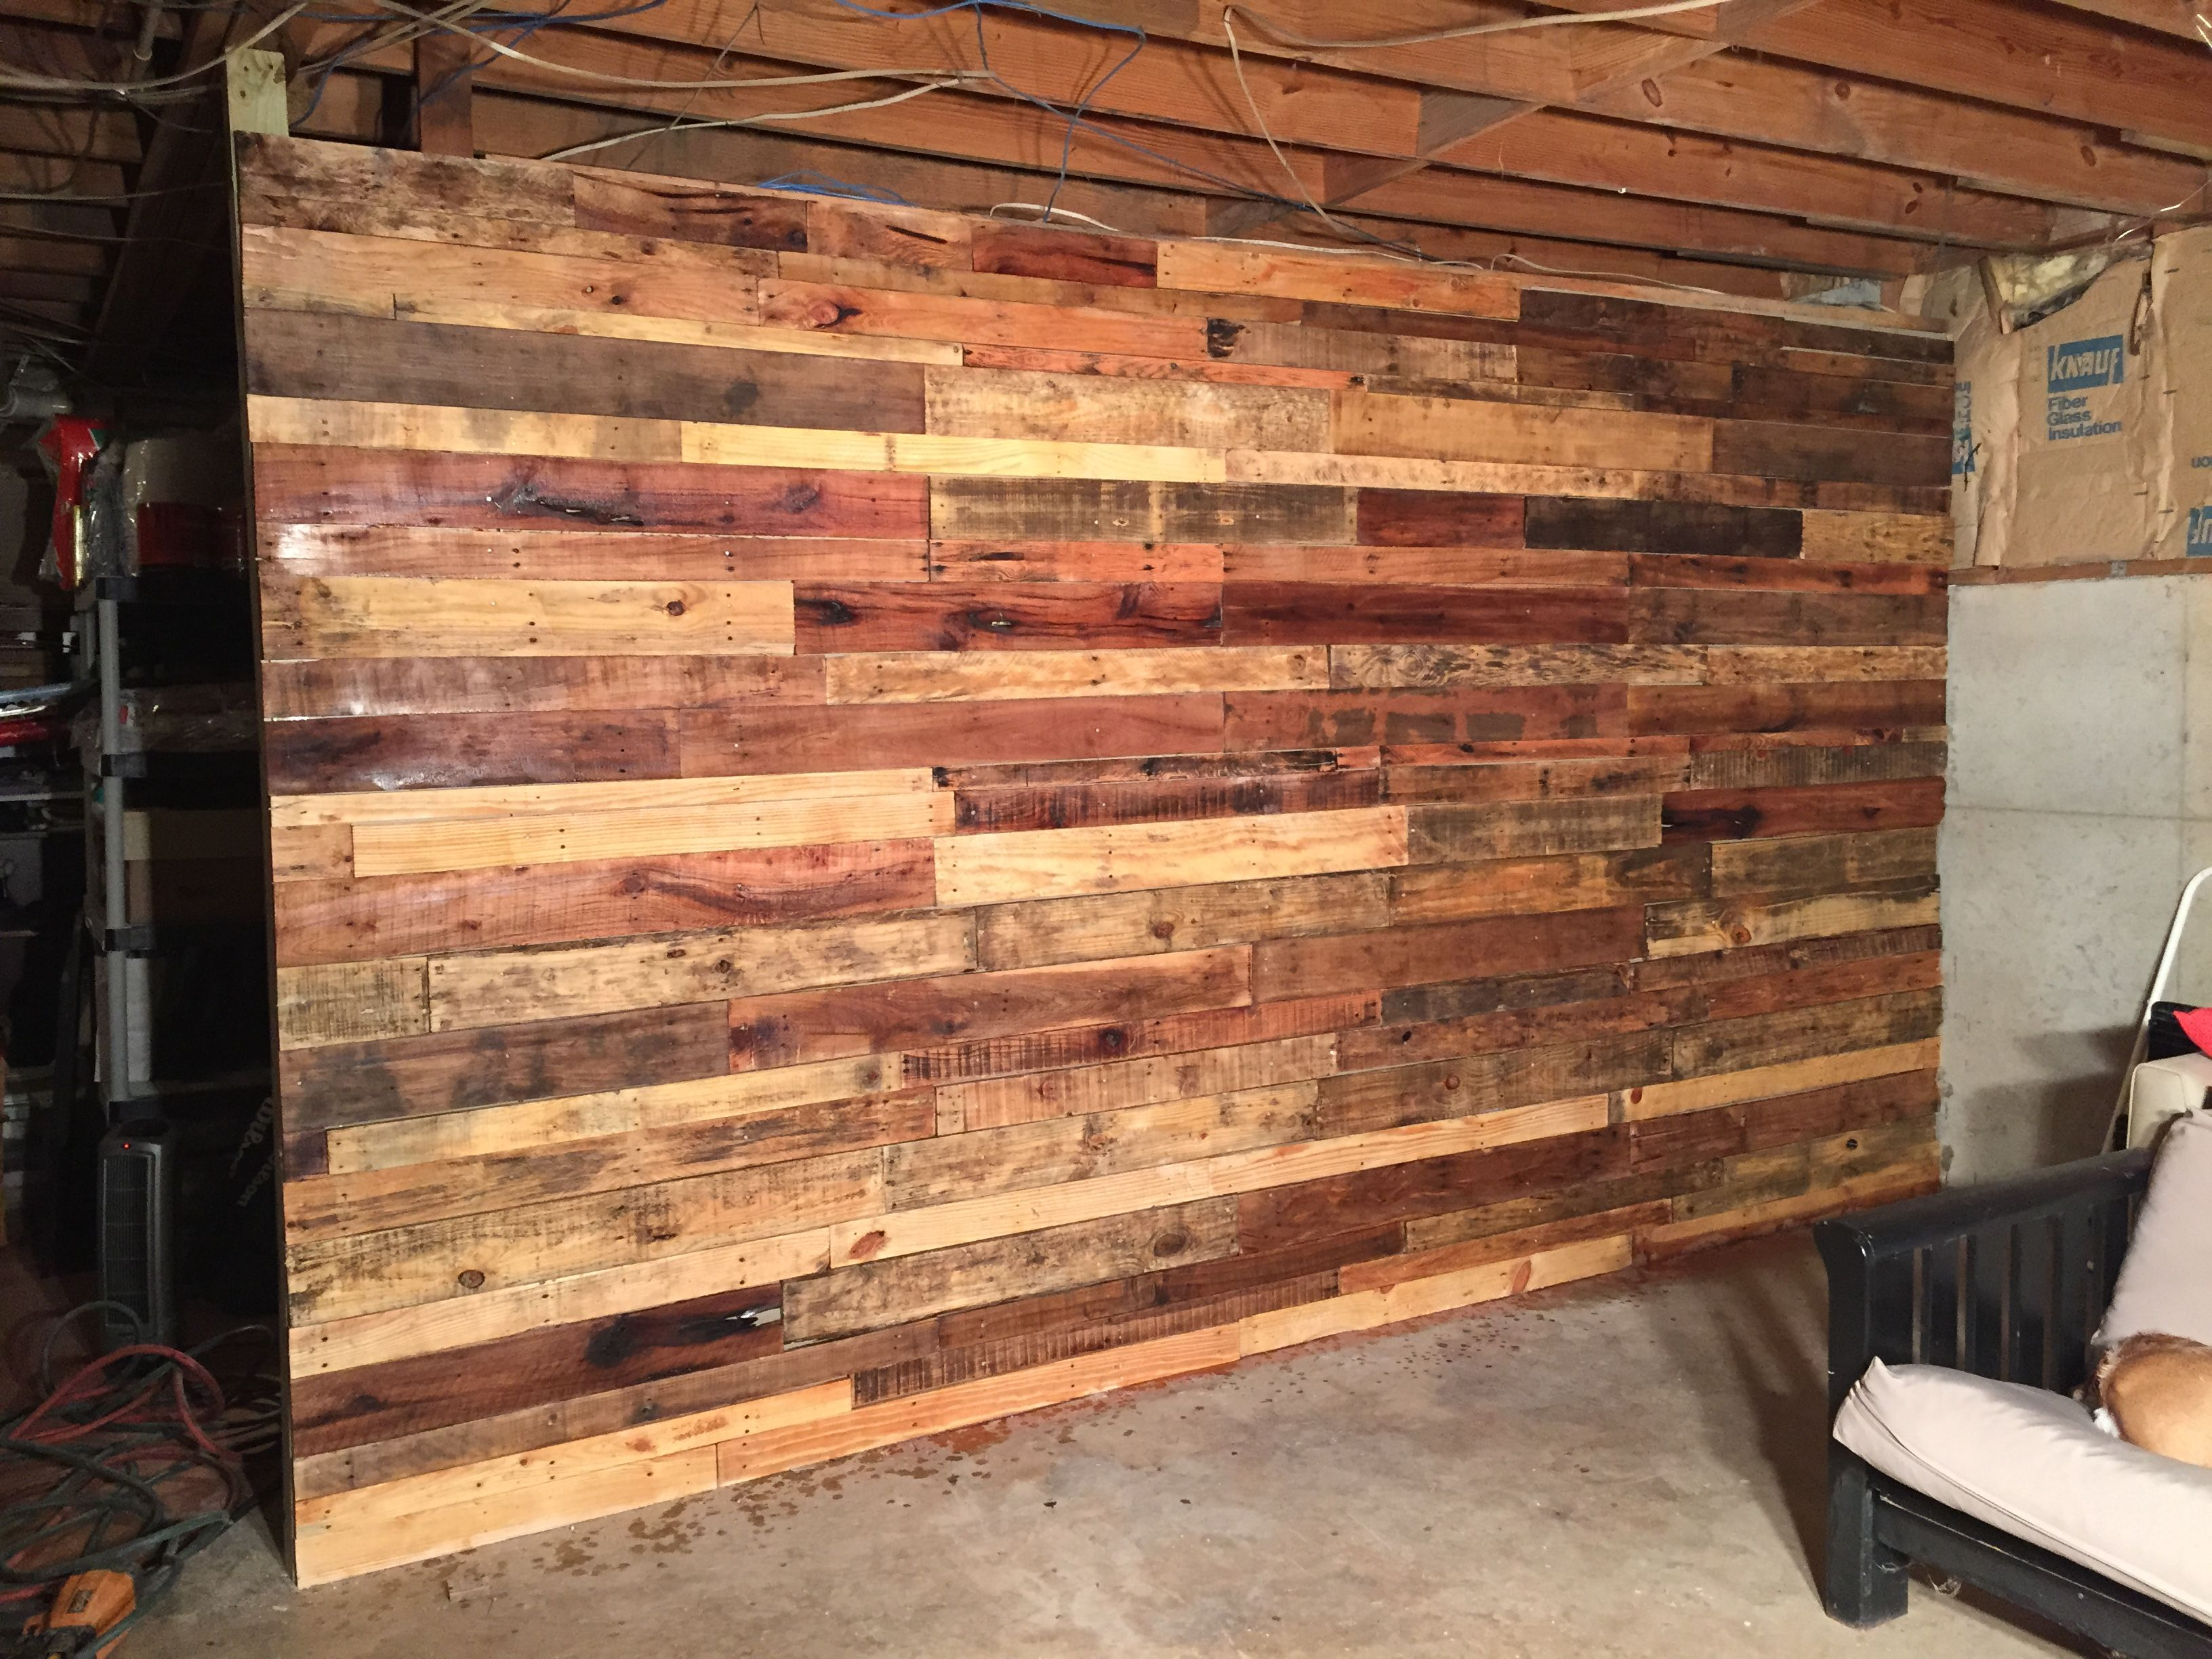 Pallet Wall Paint Drywall Brown First So You Don T See White In Between The Gaps Once Your Wall Is Done Hang P Alternatives To Drywall Wood Plank Walls Wood